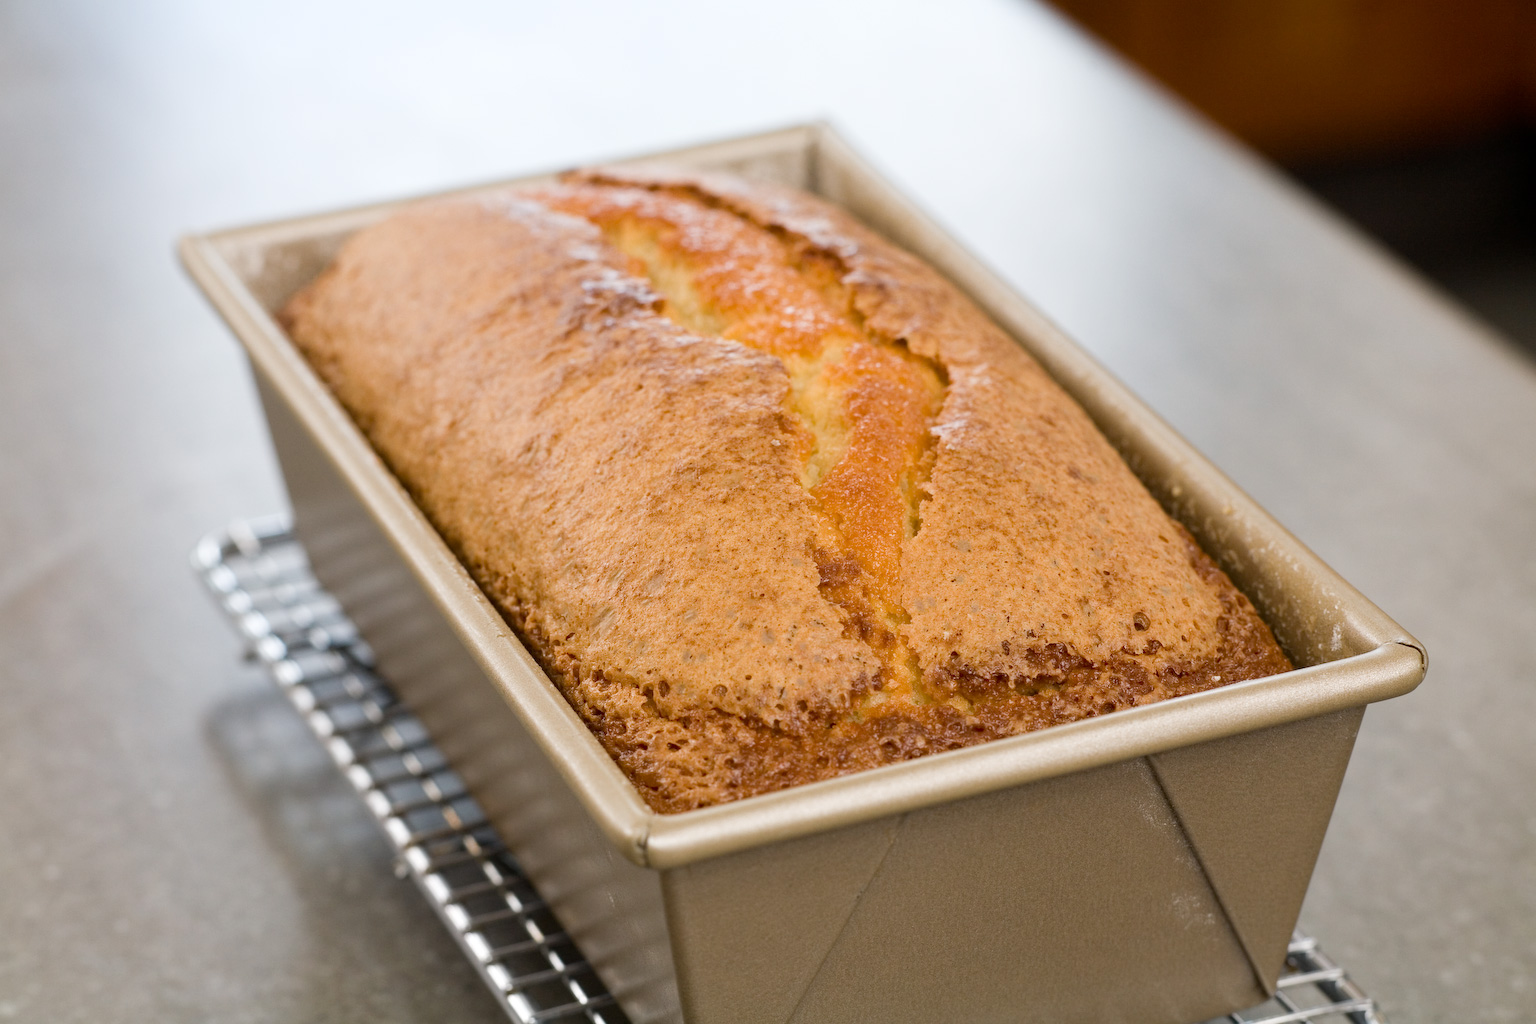 HOW TO MAKE EASY POUND CAKE